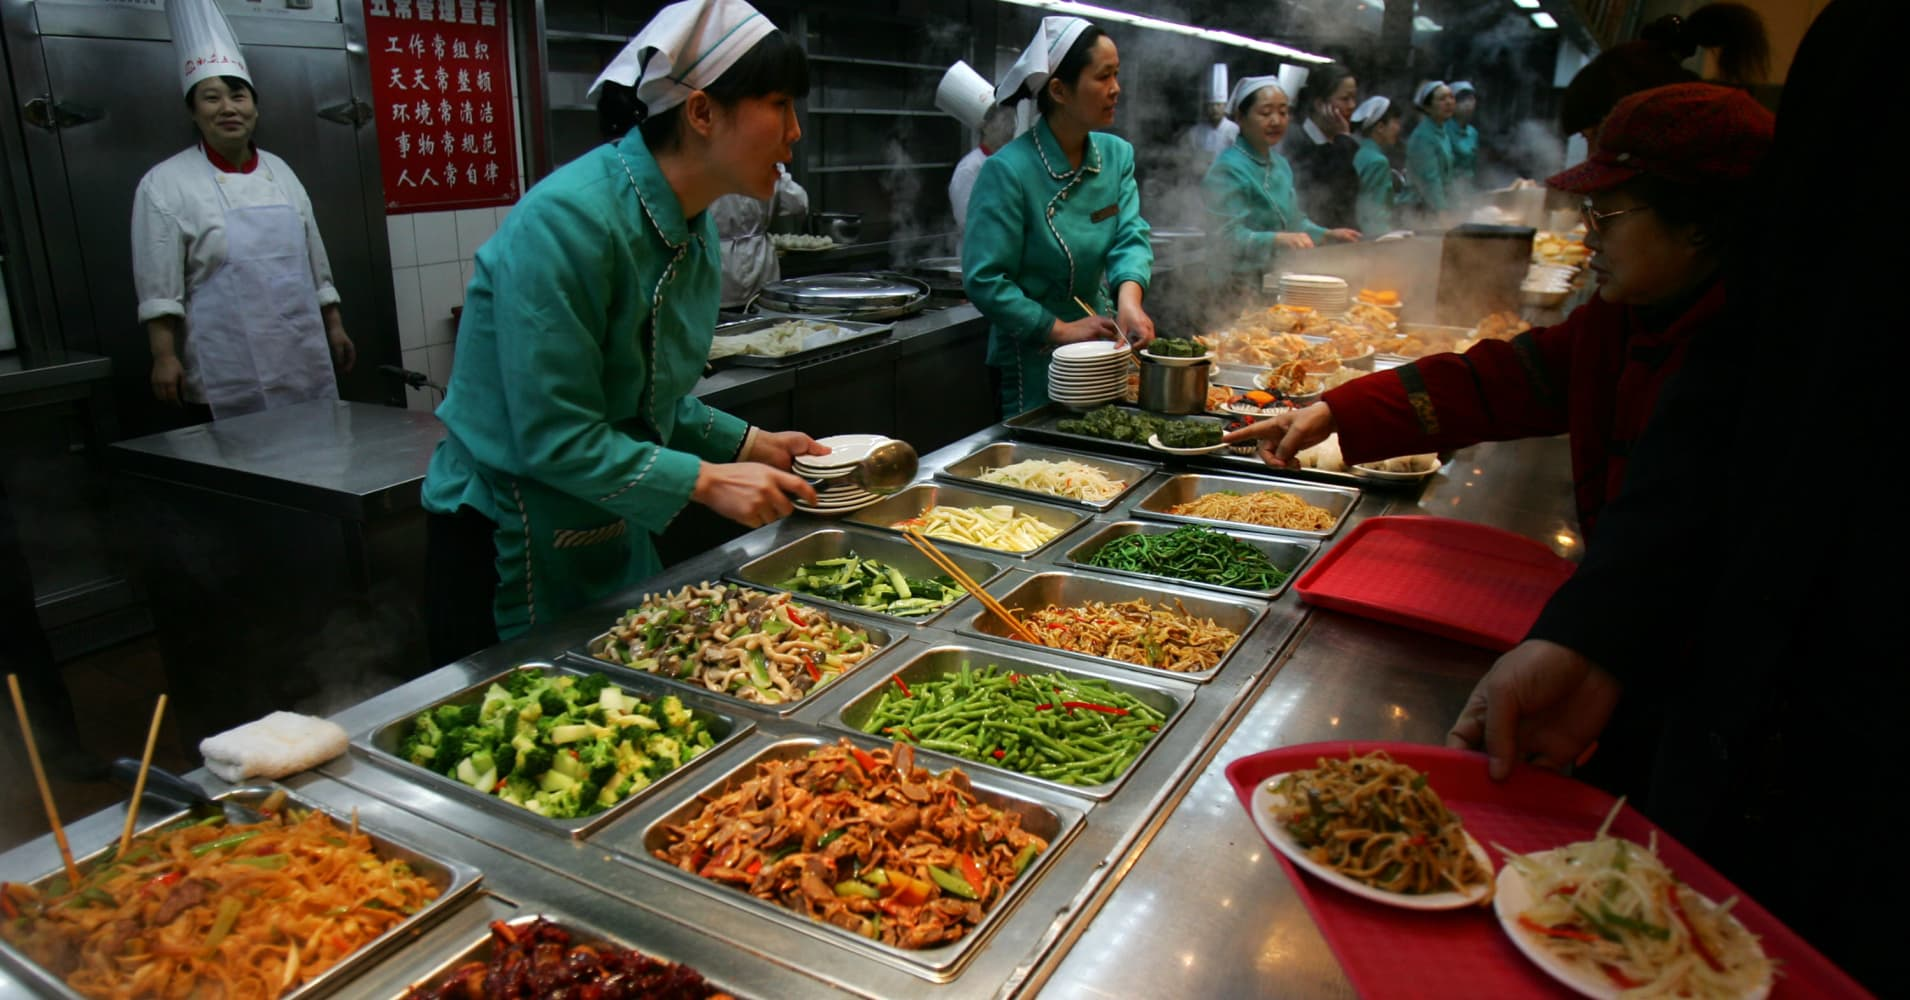 Food Delivery And Out Of Home Dining Are Thriving In China